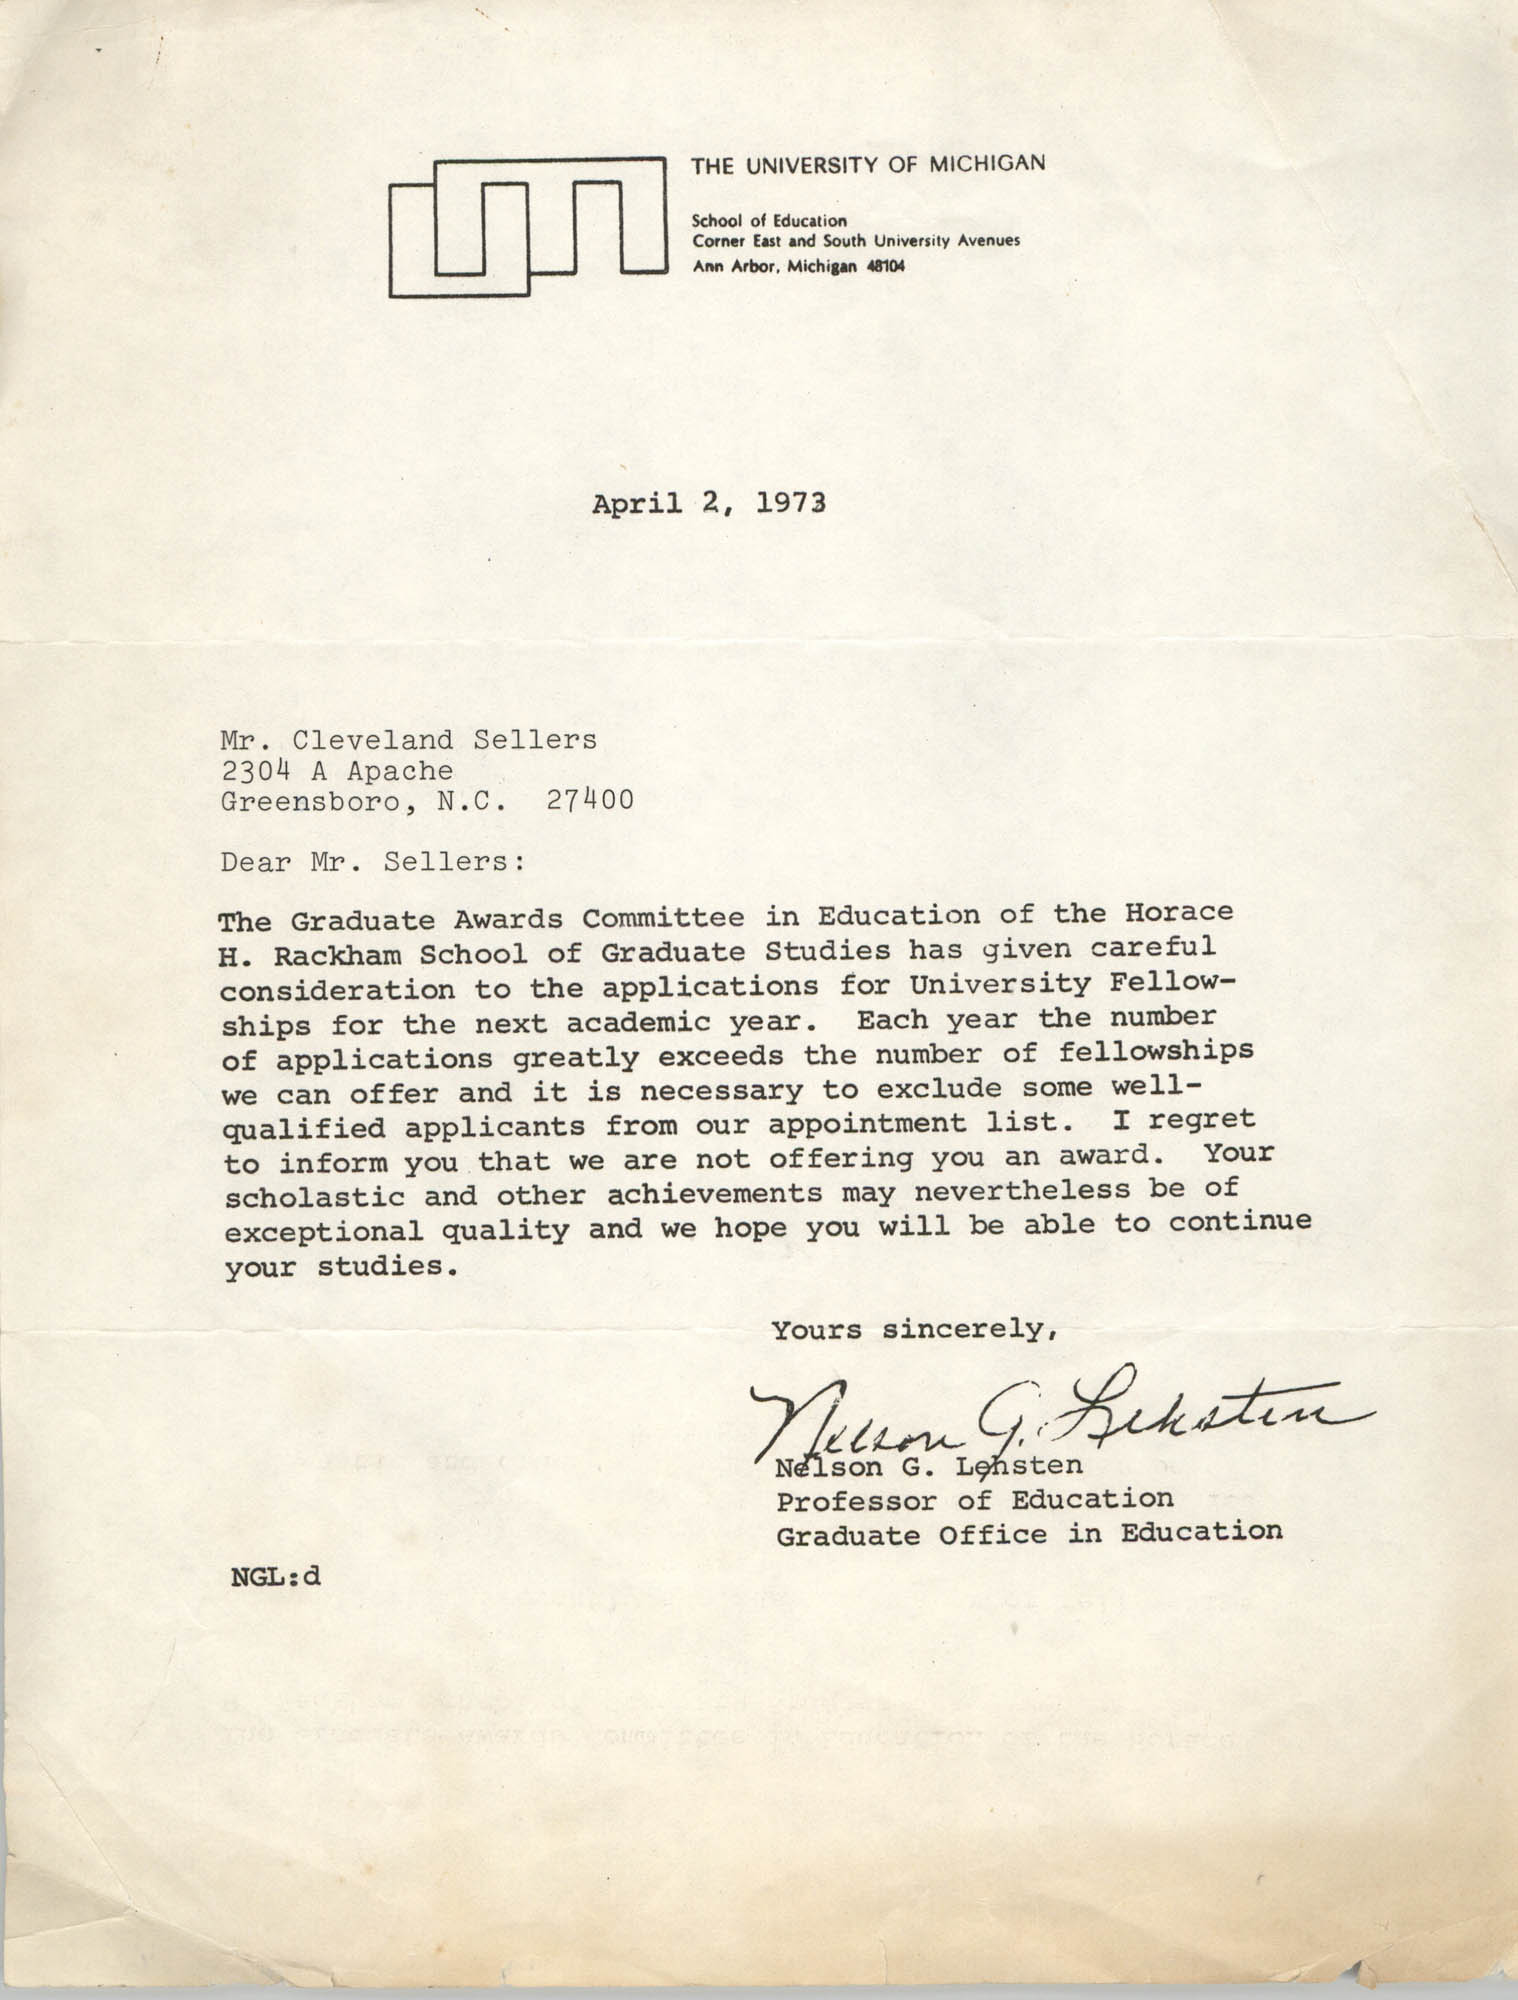 Letter from Nelson G. Lehsten to Cleveland Sellers, April 2, 1973